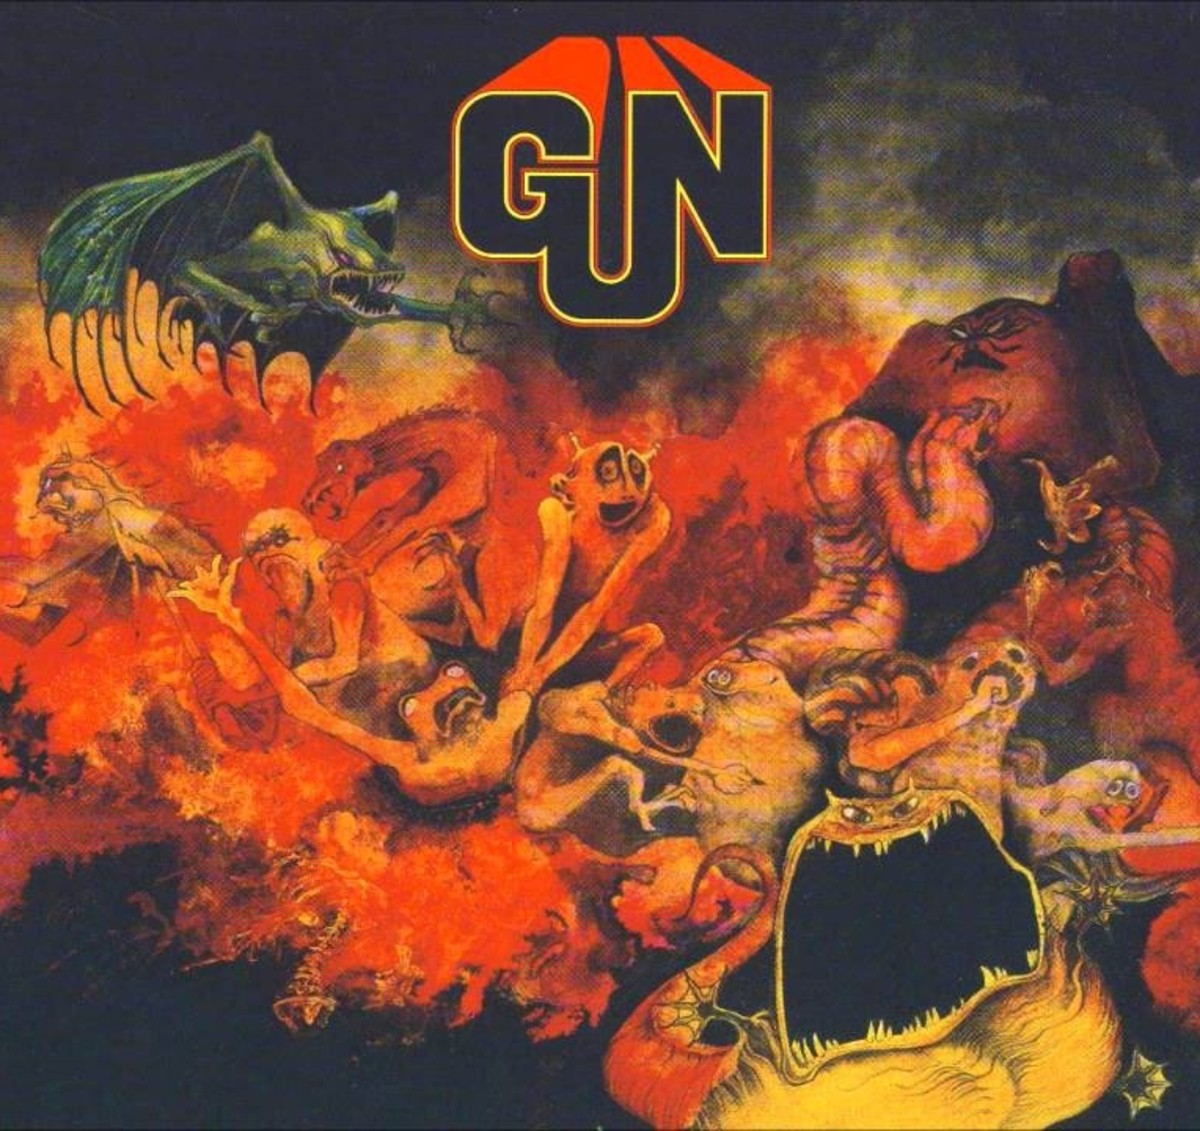 "The Gun ""Gun"" CBS Records S 63552 12"" LP Vinyl Record UK Pressing (1968) Album Cover Art & Design by Roger Dean"